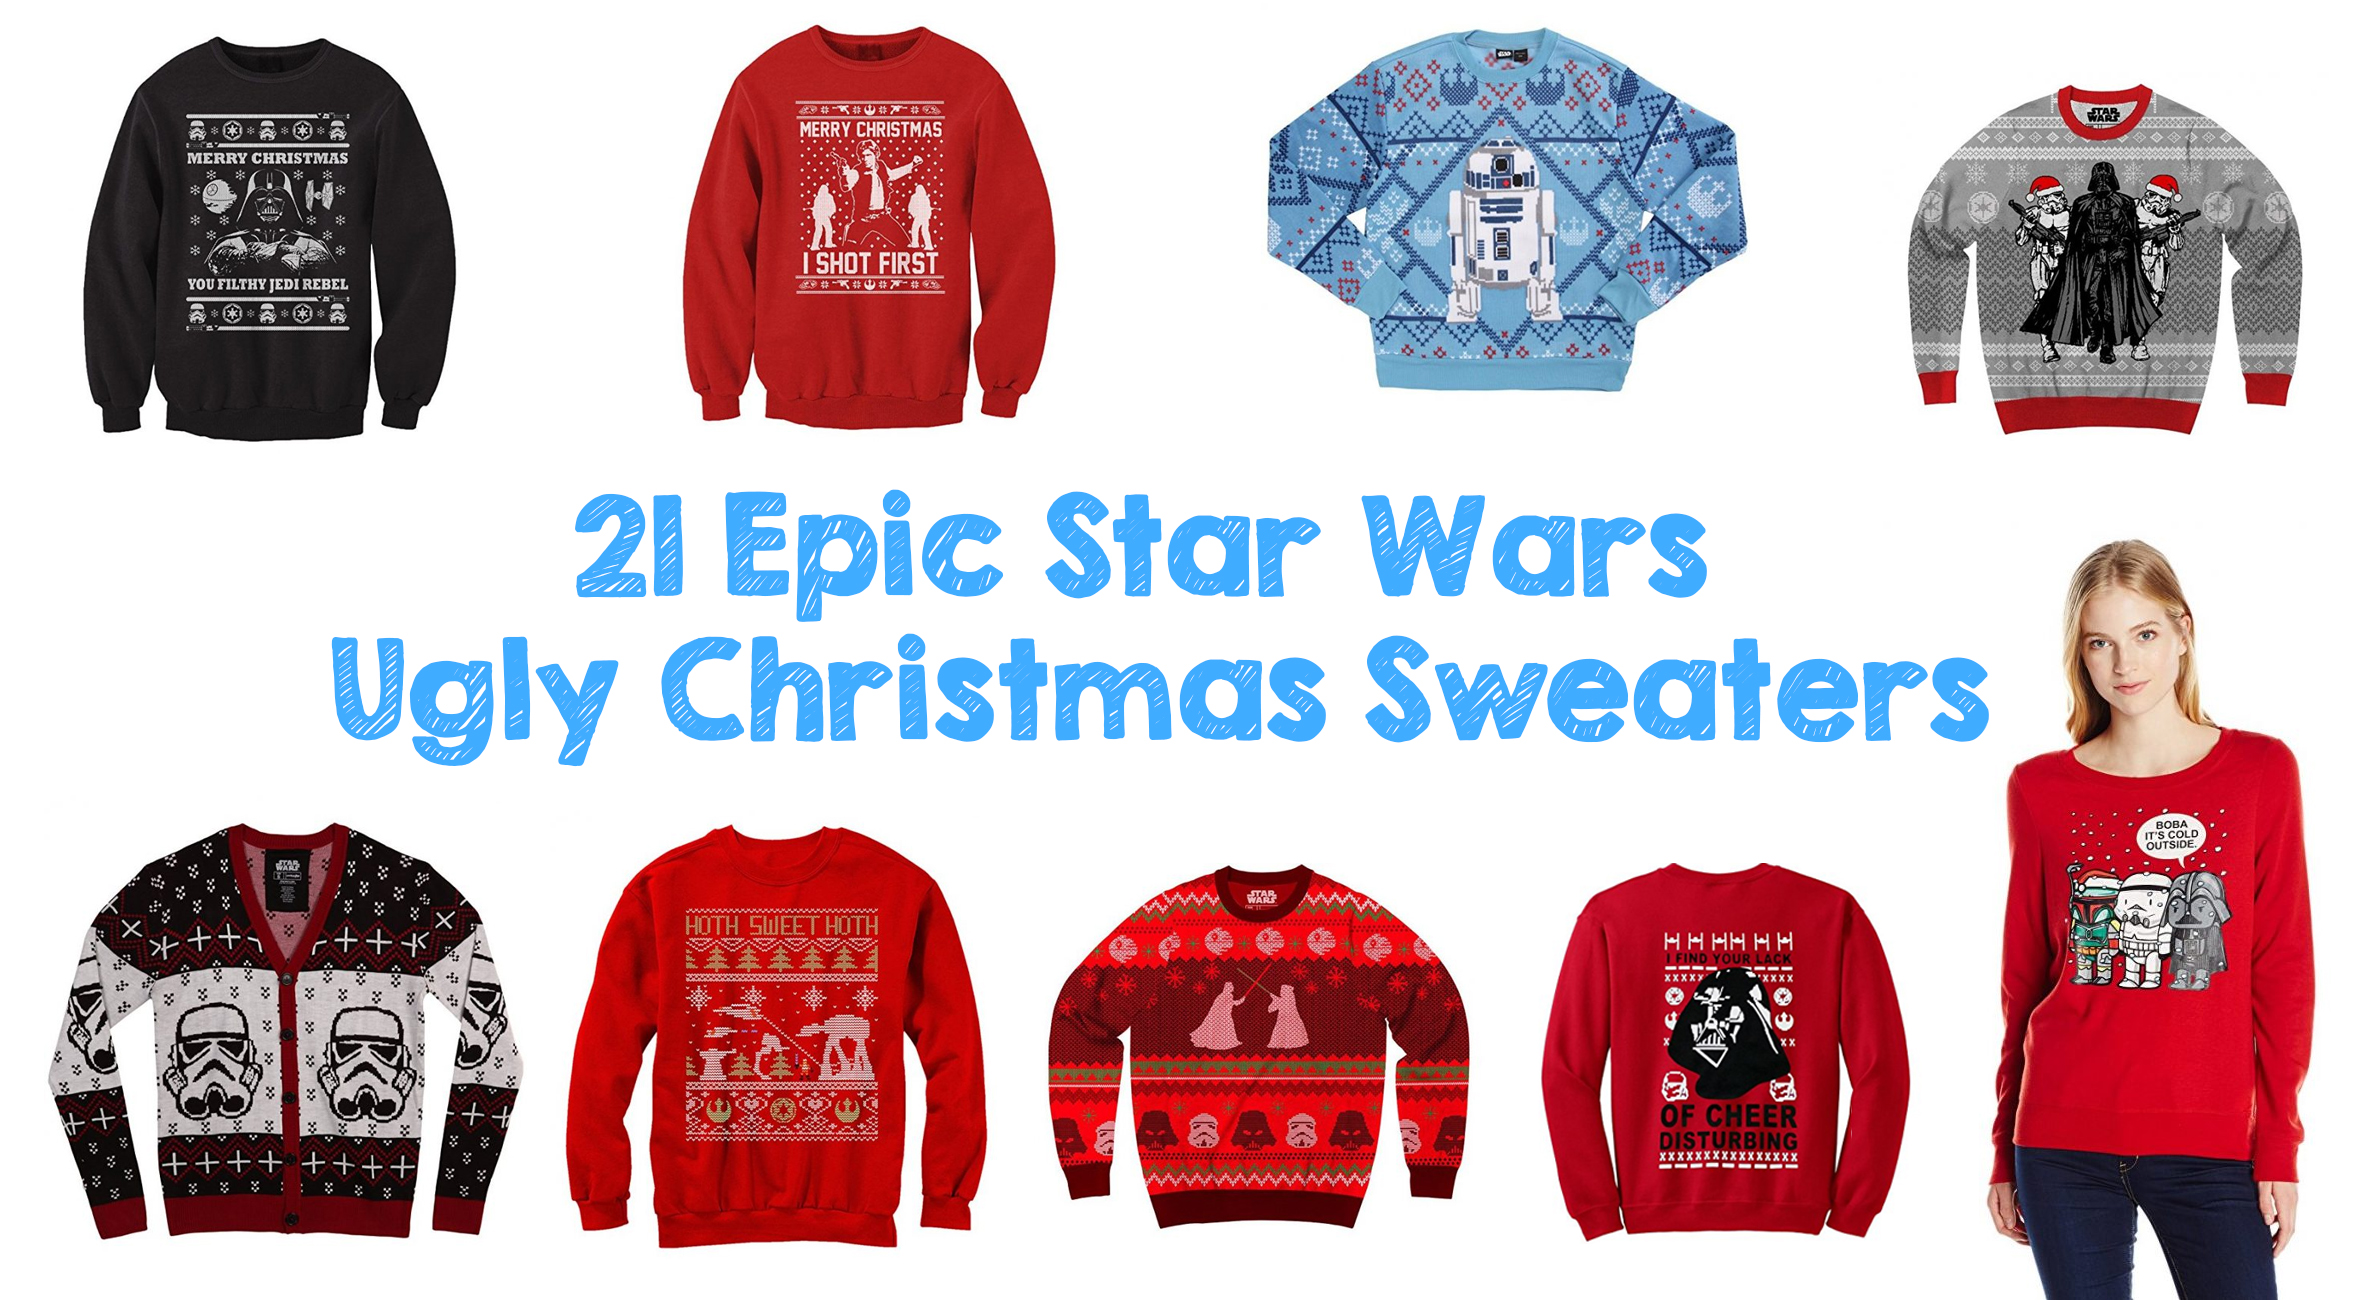 star wars movie title ugly christmas sweater - Ugly Christmas Sweater Amazon